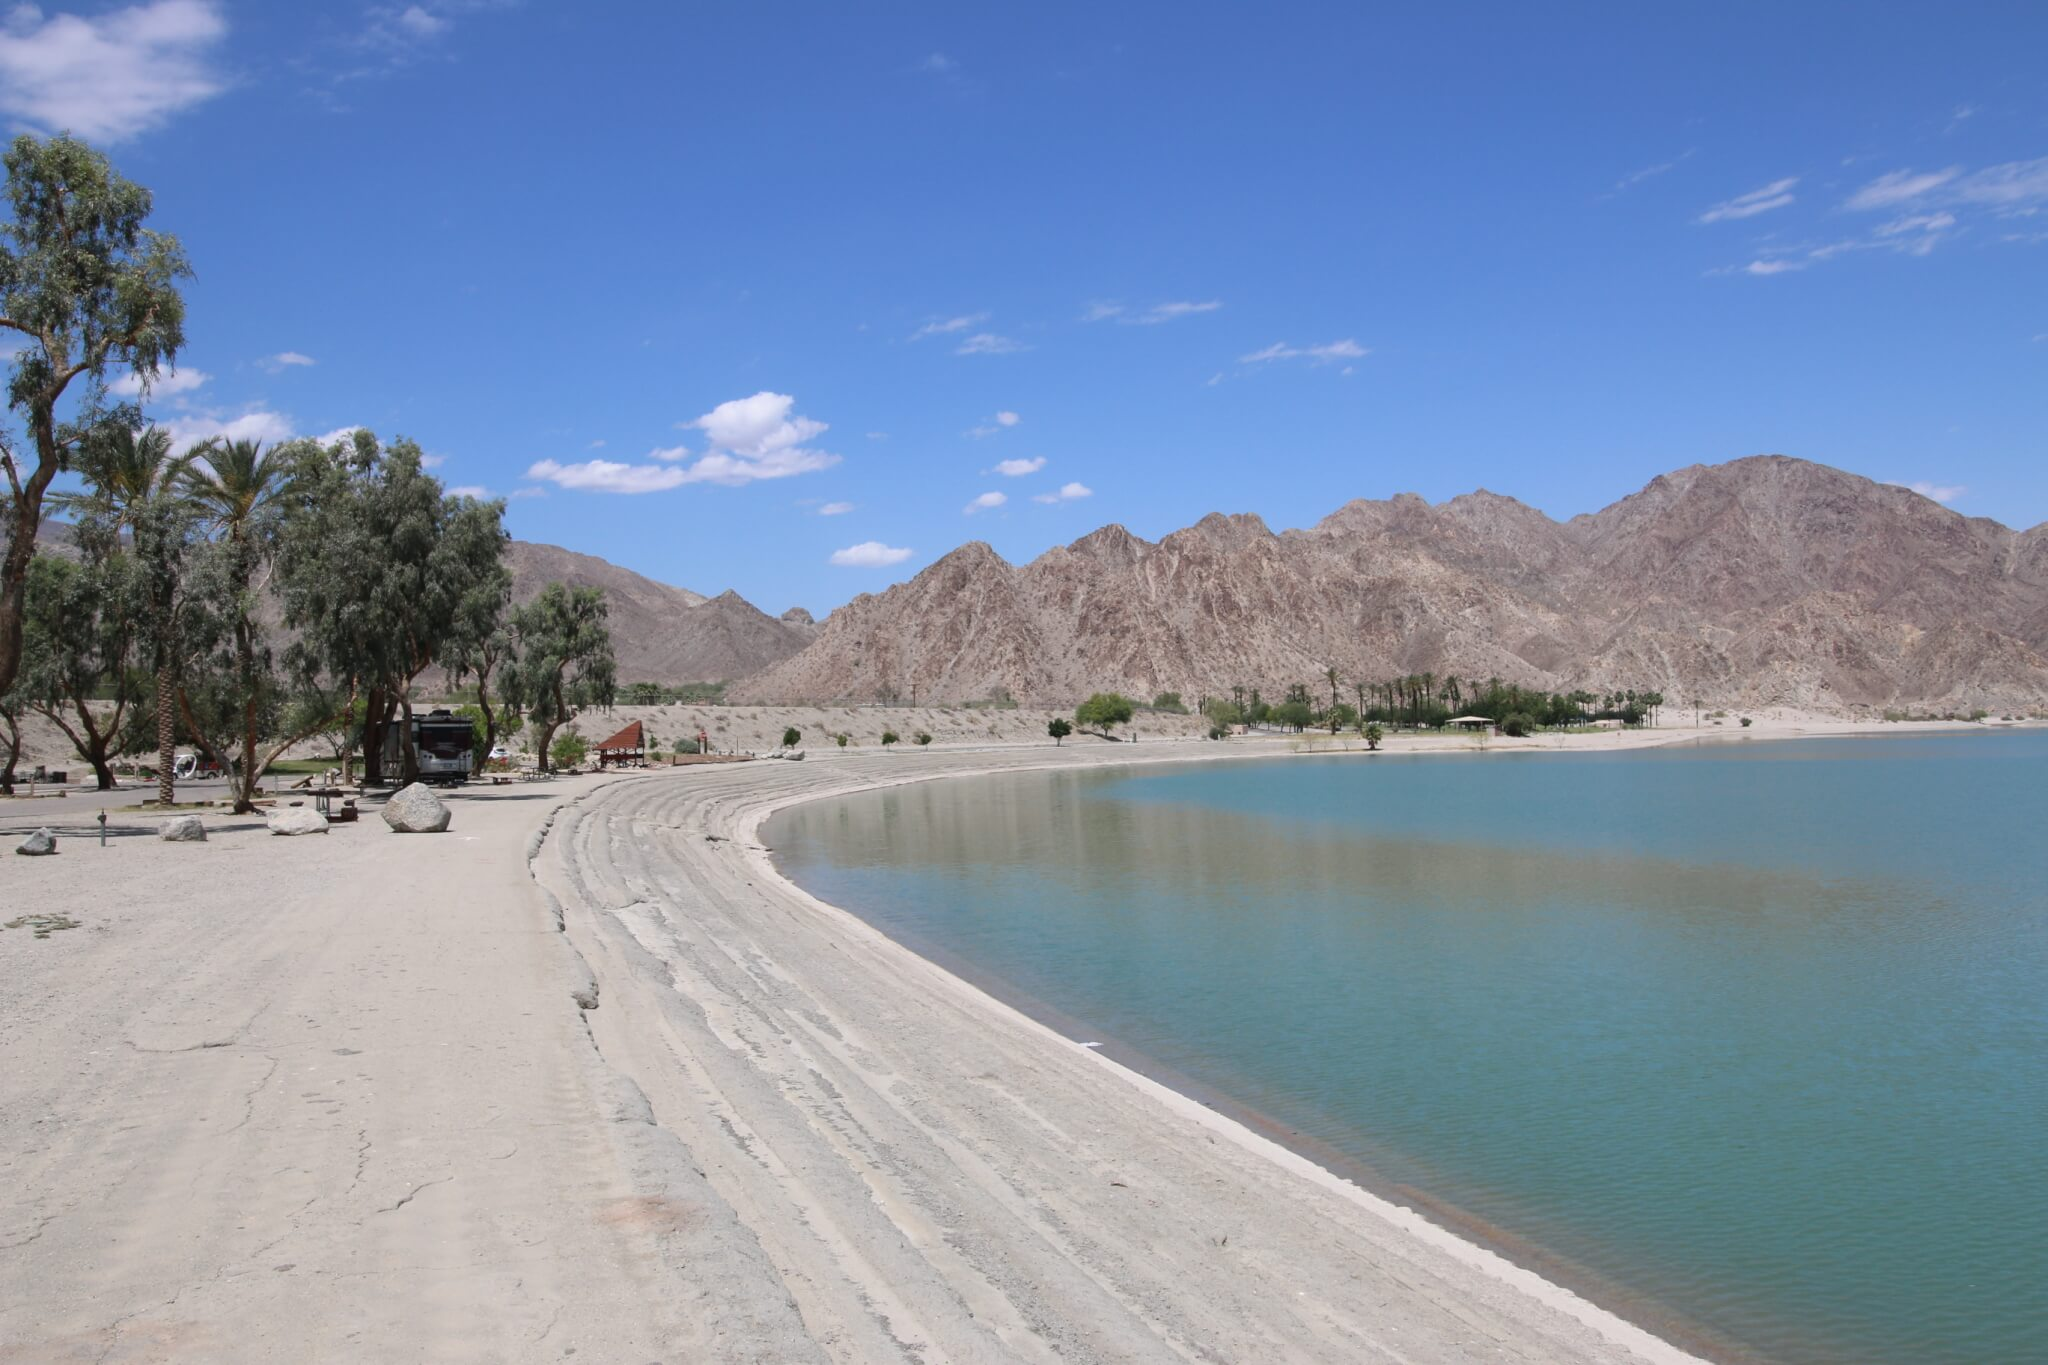 Riverside County Parks Campgrounds_Lake Cahuilla Lake View